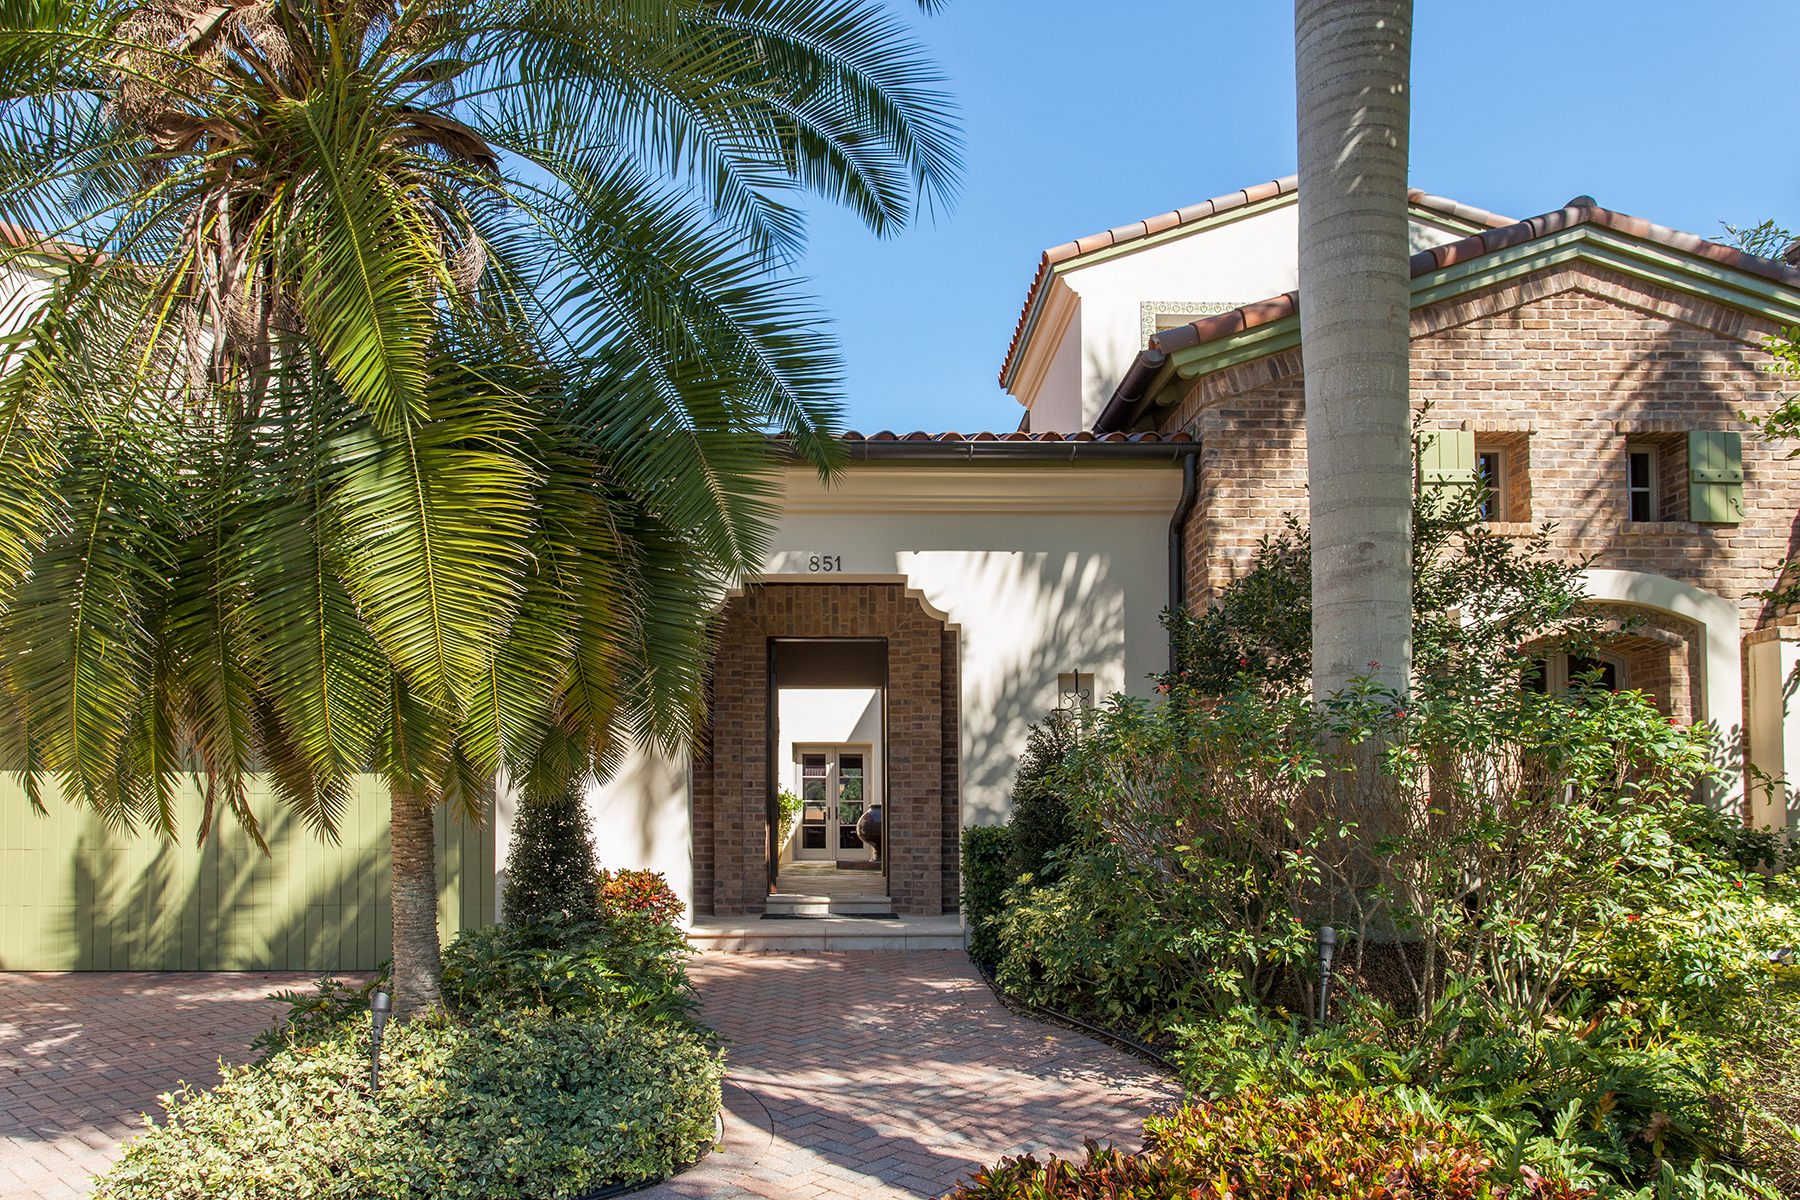 Single Family Home for Sale at ST PETERSBURG 851 Brightwaters Blvd NE Snell Isle, St. Petersburg, Florida, 33704 United States